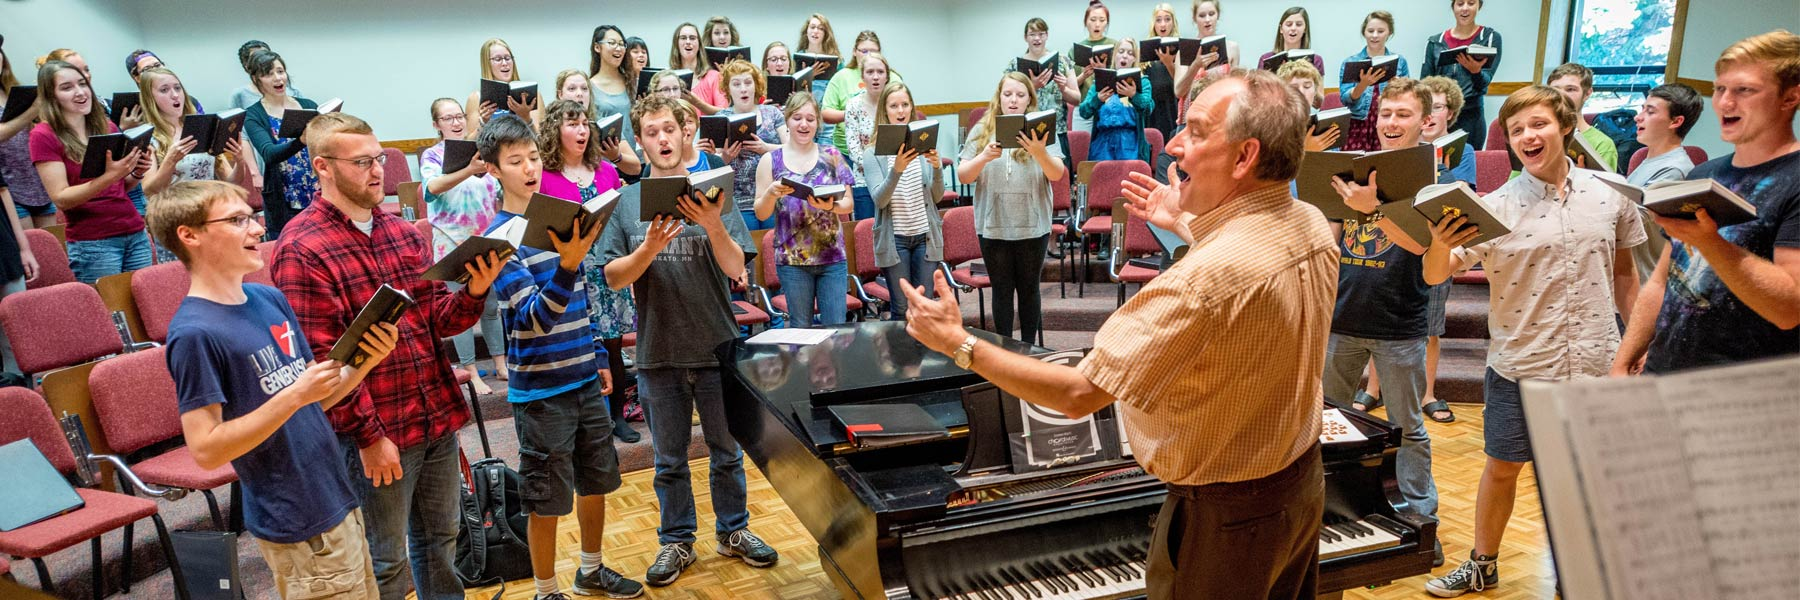 Prof. Dennis Marzolf directs a Bethany Concert Choir practice as they sing a hymn in Bethany's Silber Hall.